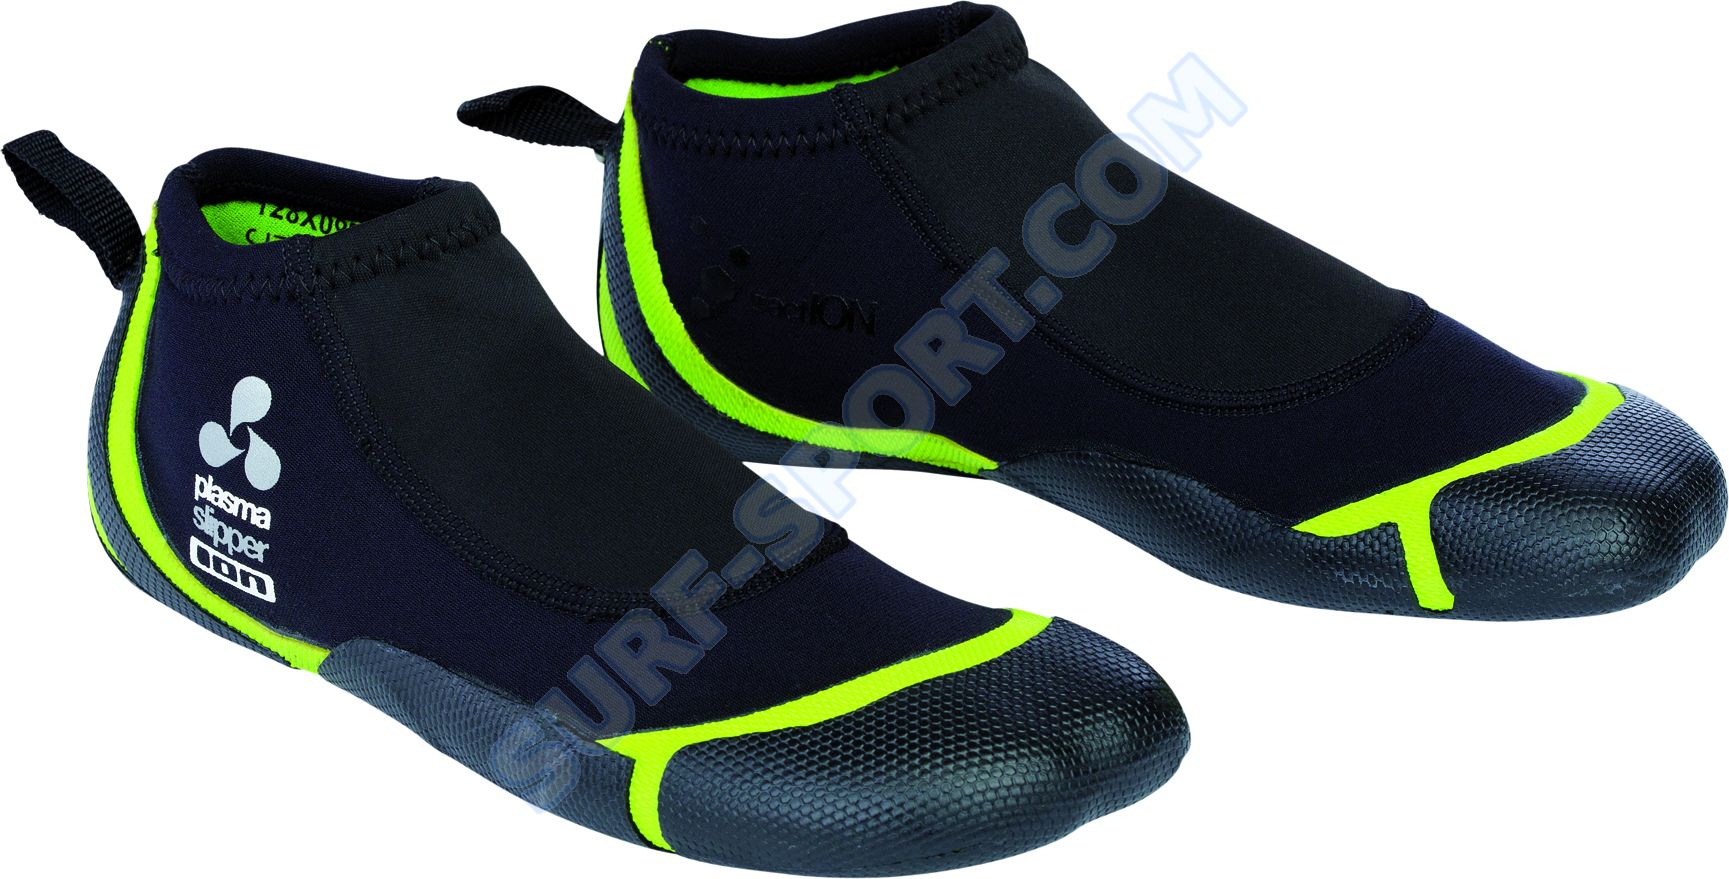 48400-4313_plasma_slipper_1_5_black.jpg